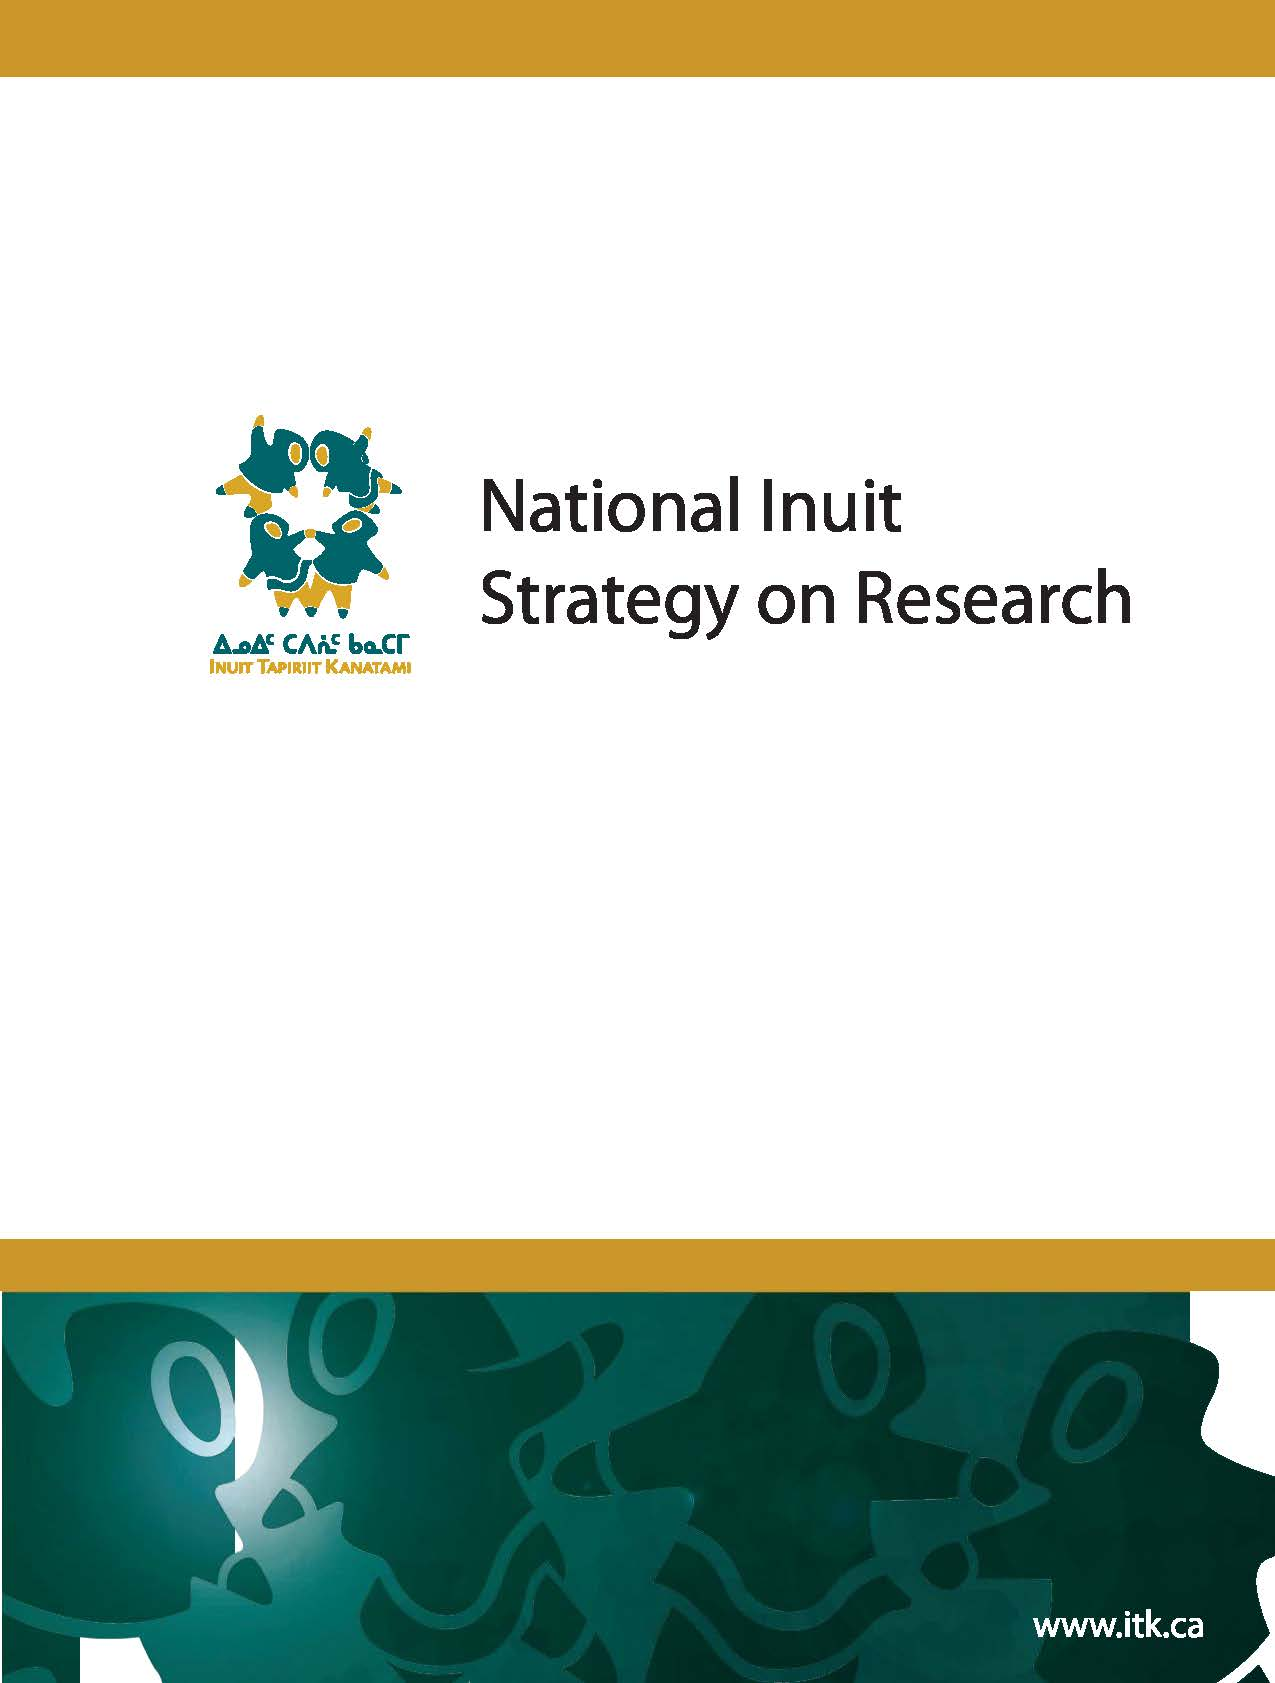 National Inuit Strategy on Research